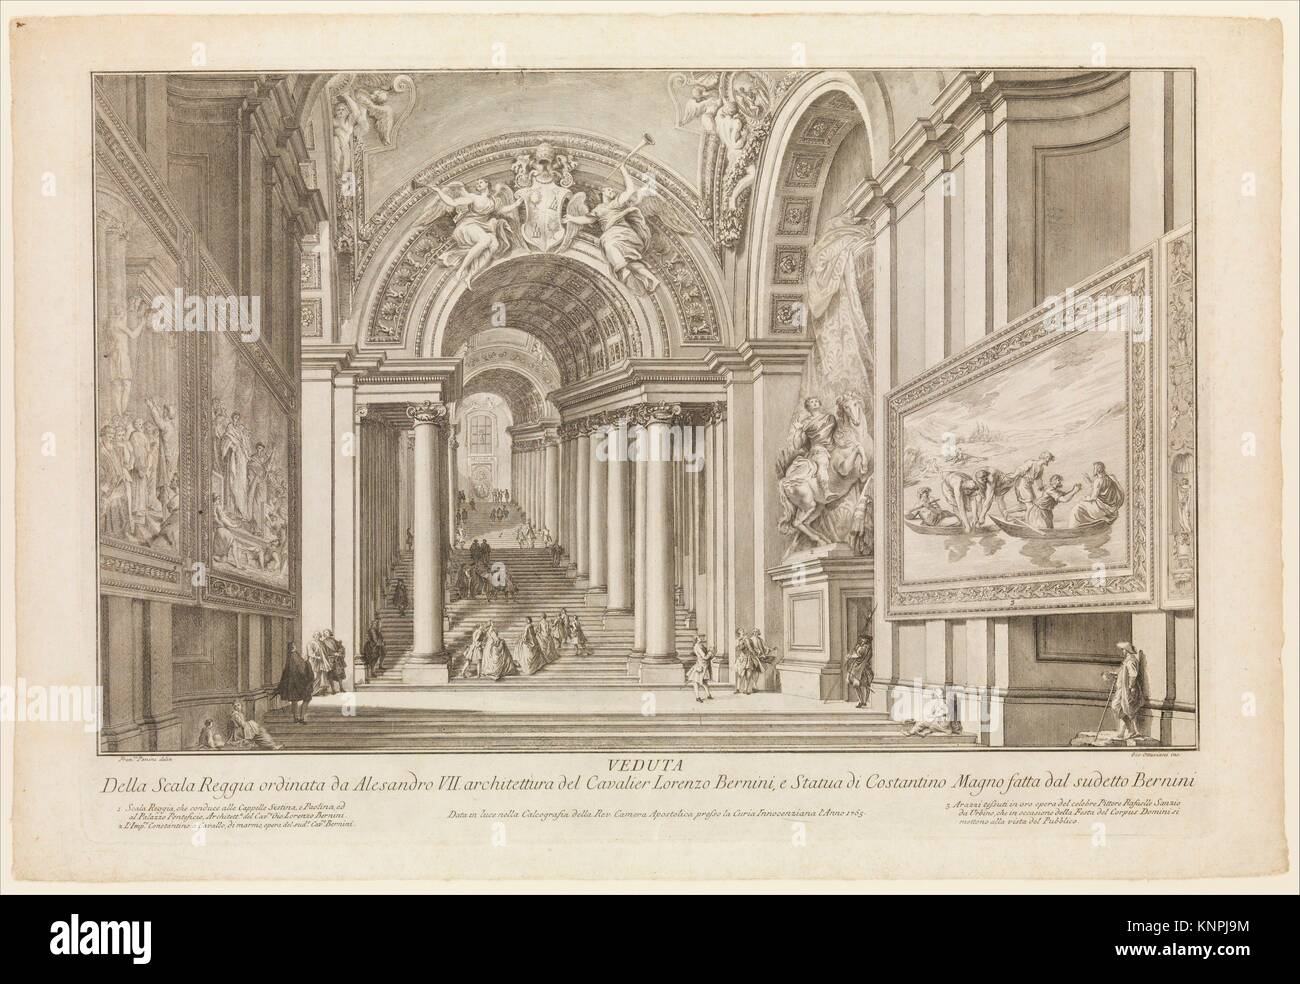 View of the Scala Reggia ordered by Alesandro VII (Vedute Della Scala Reggia ordinata da Alesandro VII). Artist: - Stock Image